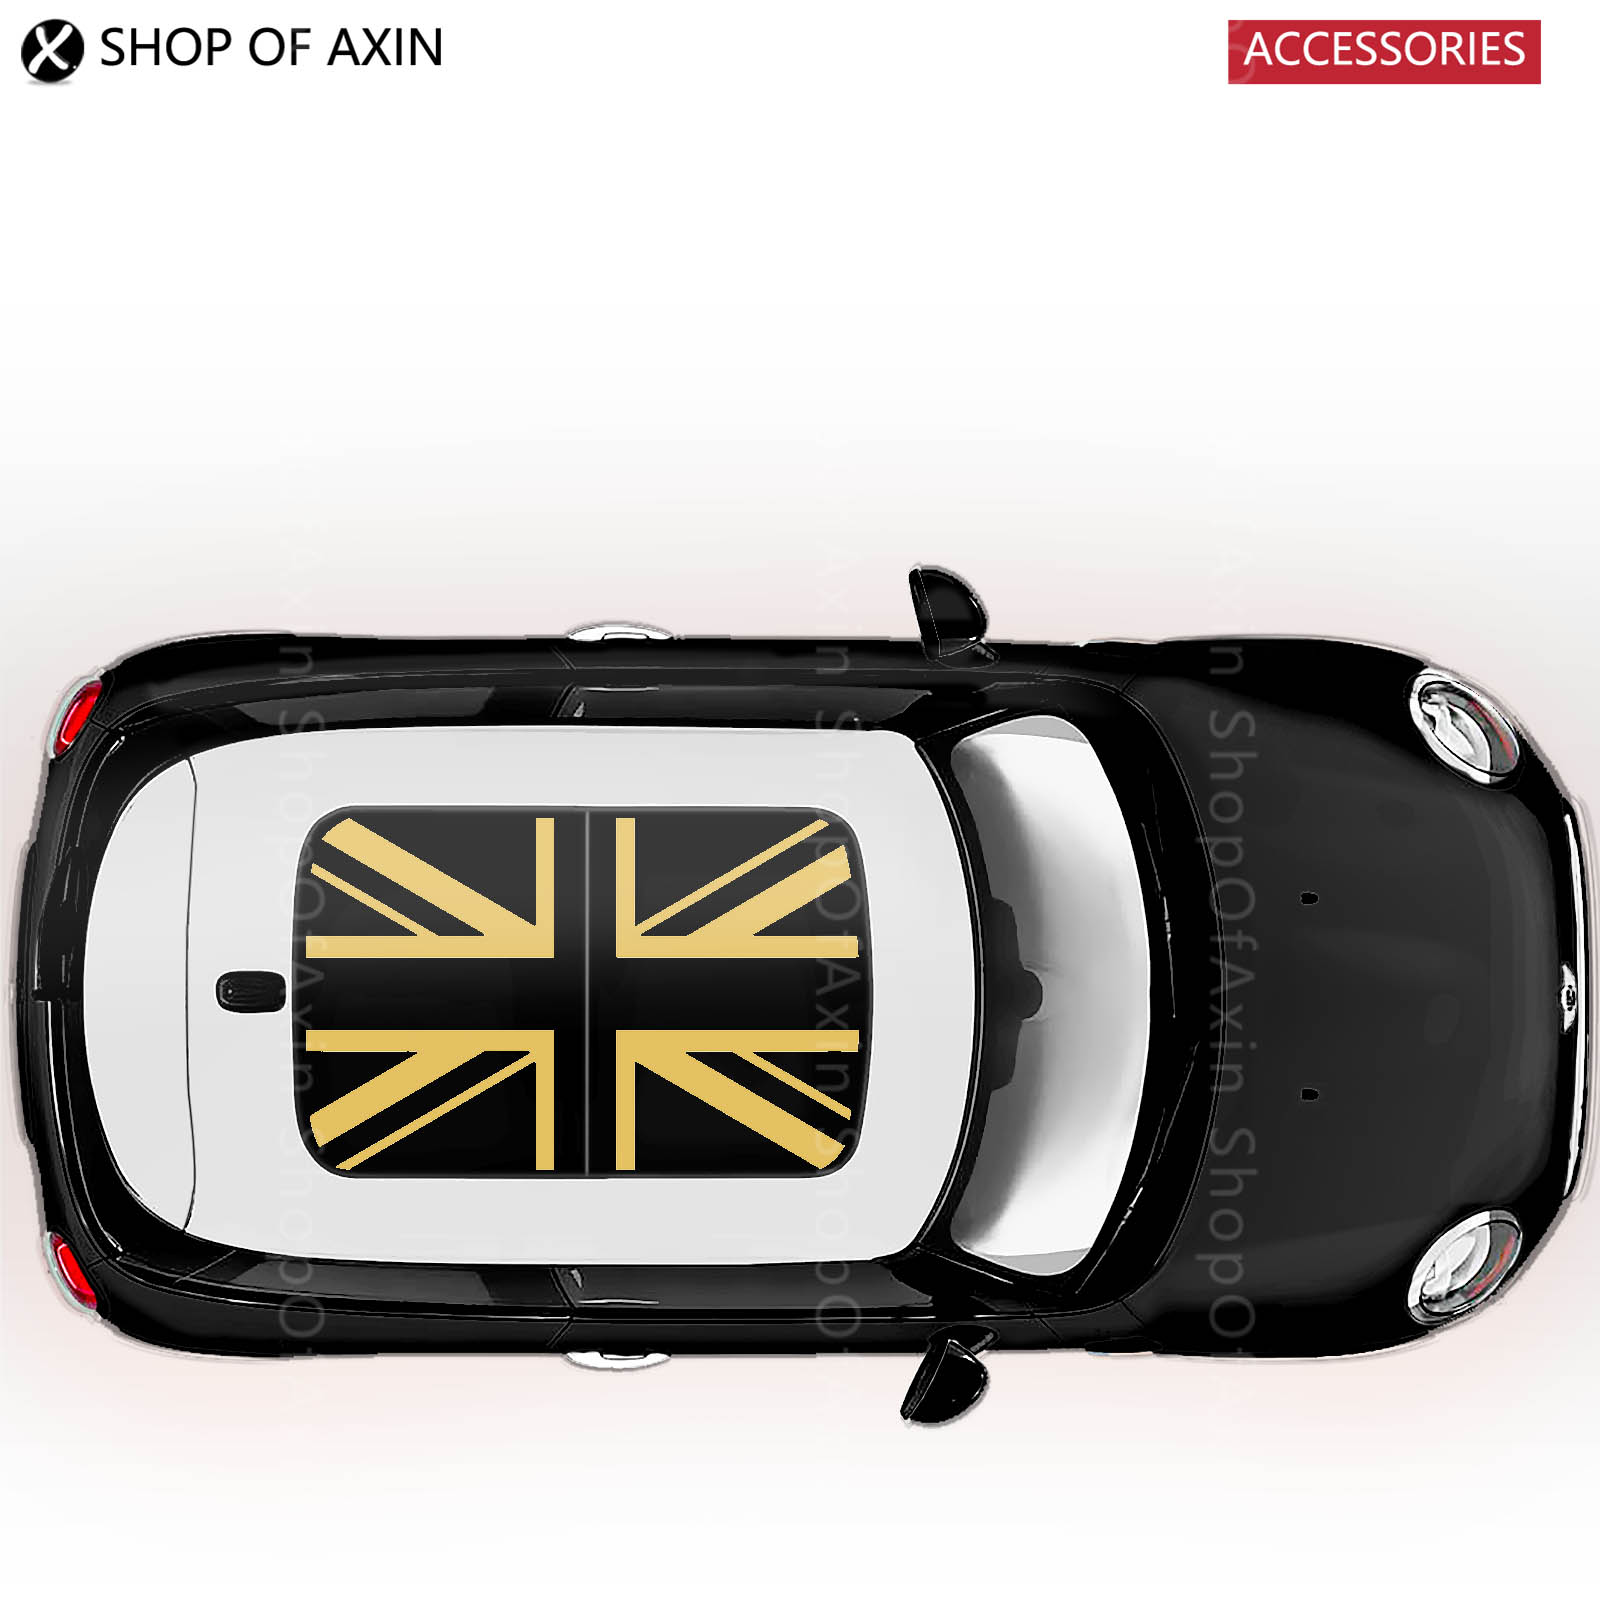 Gold UK flag sun roof Graphics stickers Sunroof for MINI Cooper clubman countryman hardtop R50 R53 R55 R56 R60 R61 F54 F55 F56 car door rocker panel decoration sticker graphics for mini cooper clubman countryman hardtop r50 r53 r55 r56 r60 r61 f54 f55 f56